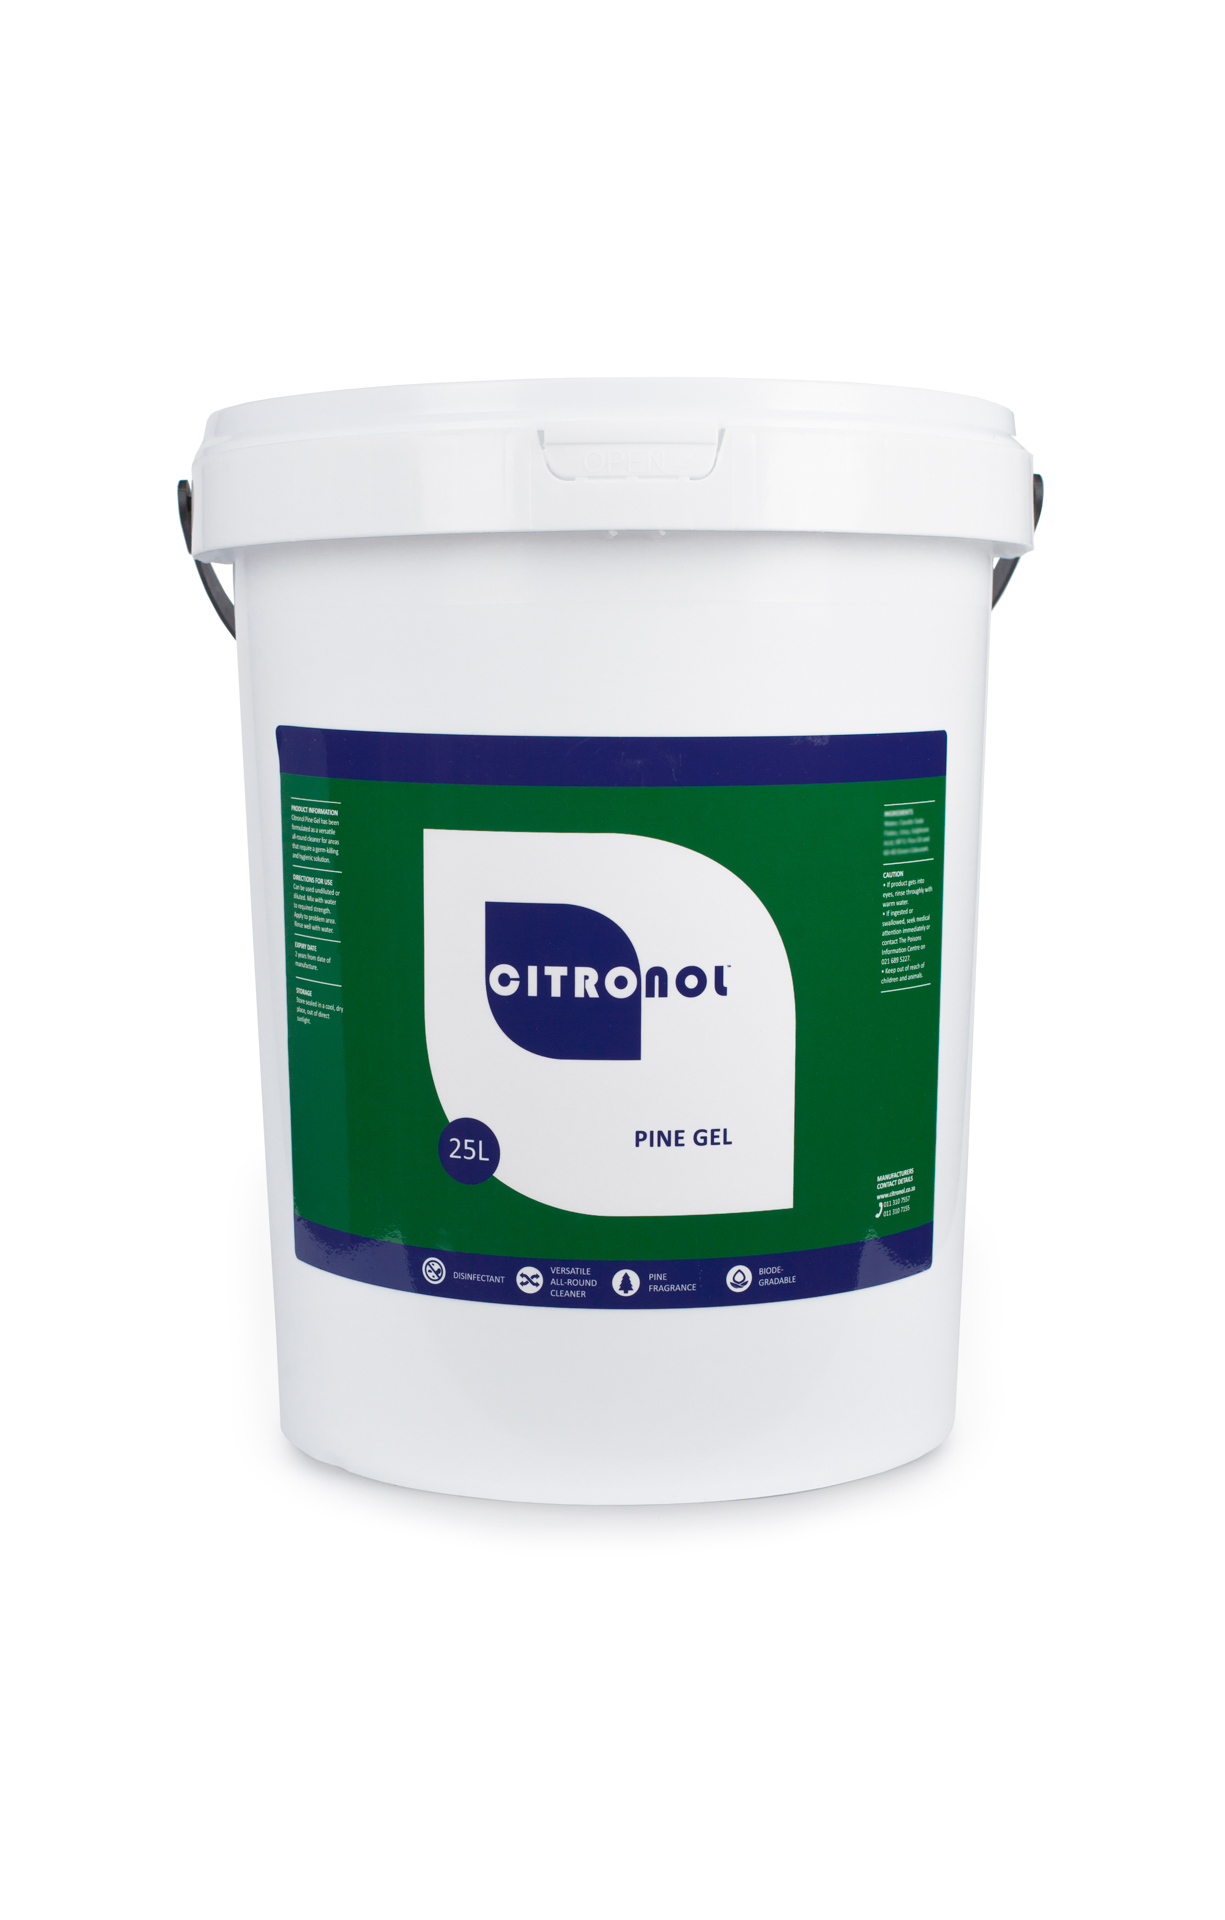 Pine Gel Citronol